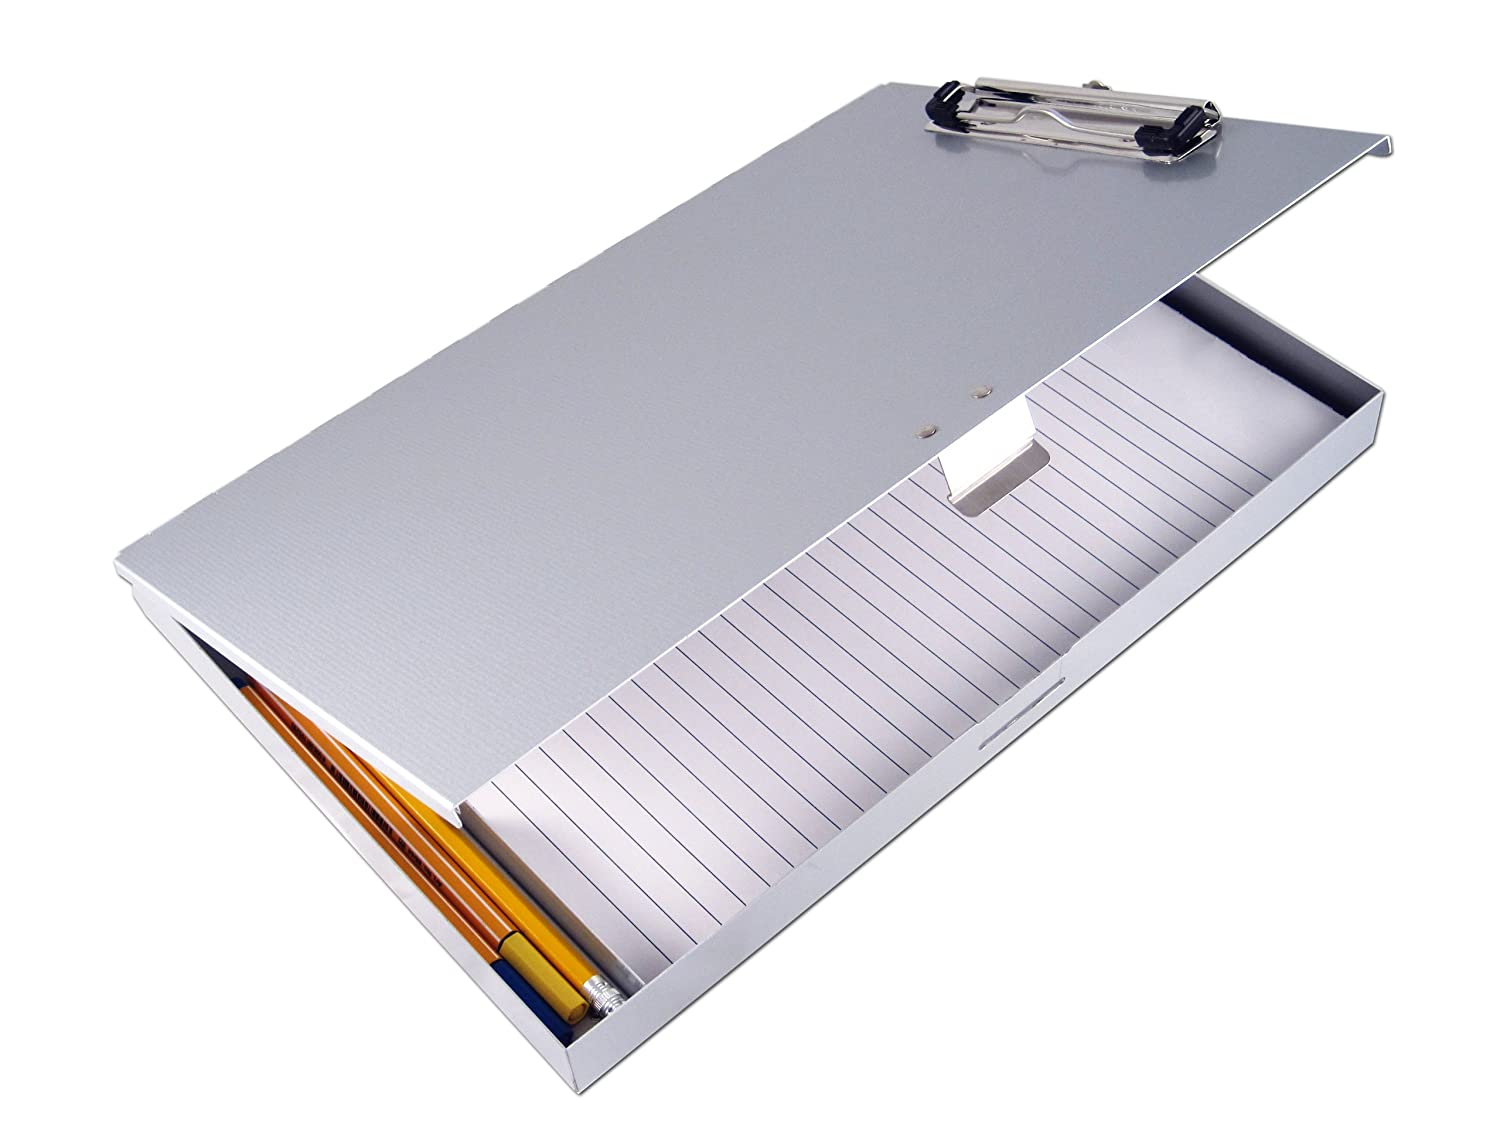 Saunders Recycled Aluminium Tuff-Writer Storage Clipboard, Letter Size, Silver, 45300